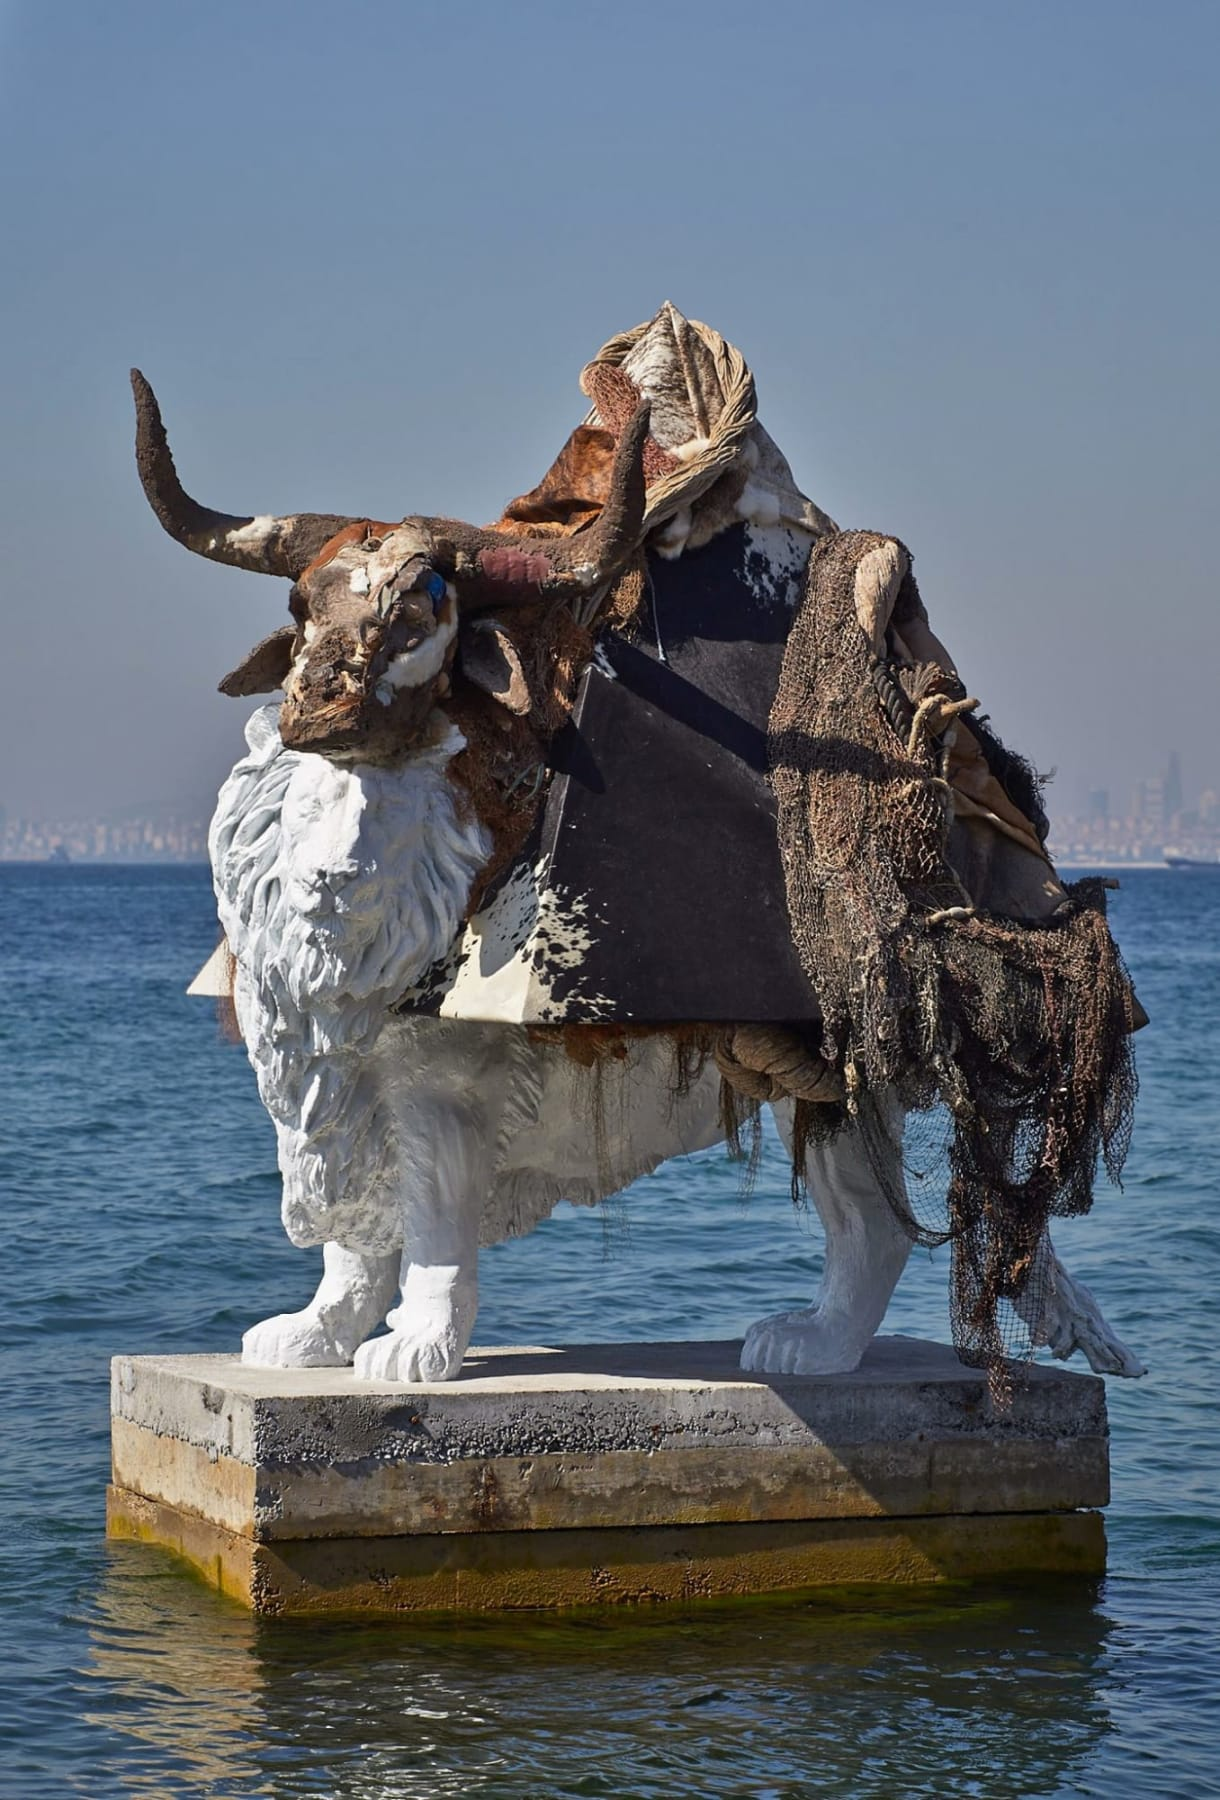 Classical lion sculpture on a pedestal in a body of water is covered with an antlered animal skull, netting, and tribal blankets